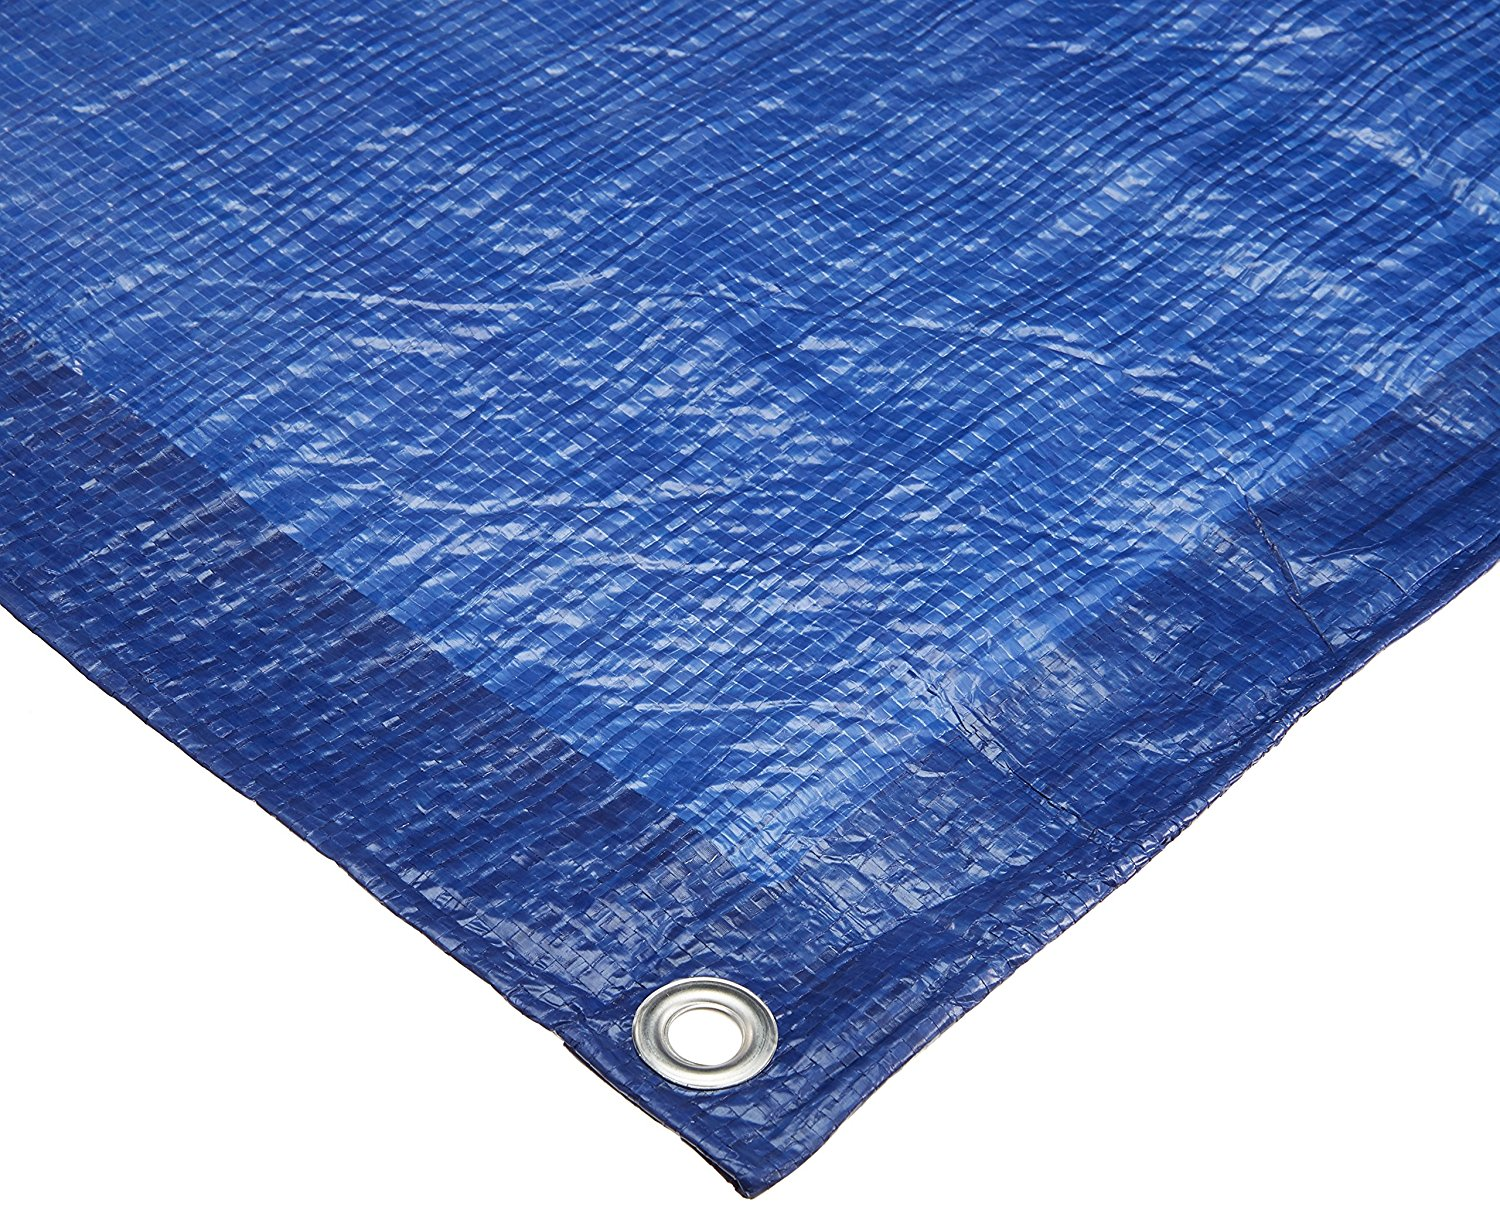 Comfitwear 8'x10' Blue Poly Tarp Cover, Water Proof Tent Shelter Camping RV Boat Tarpaulin